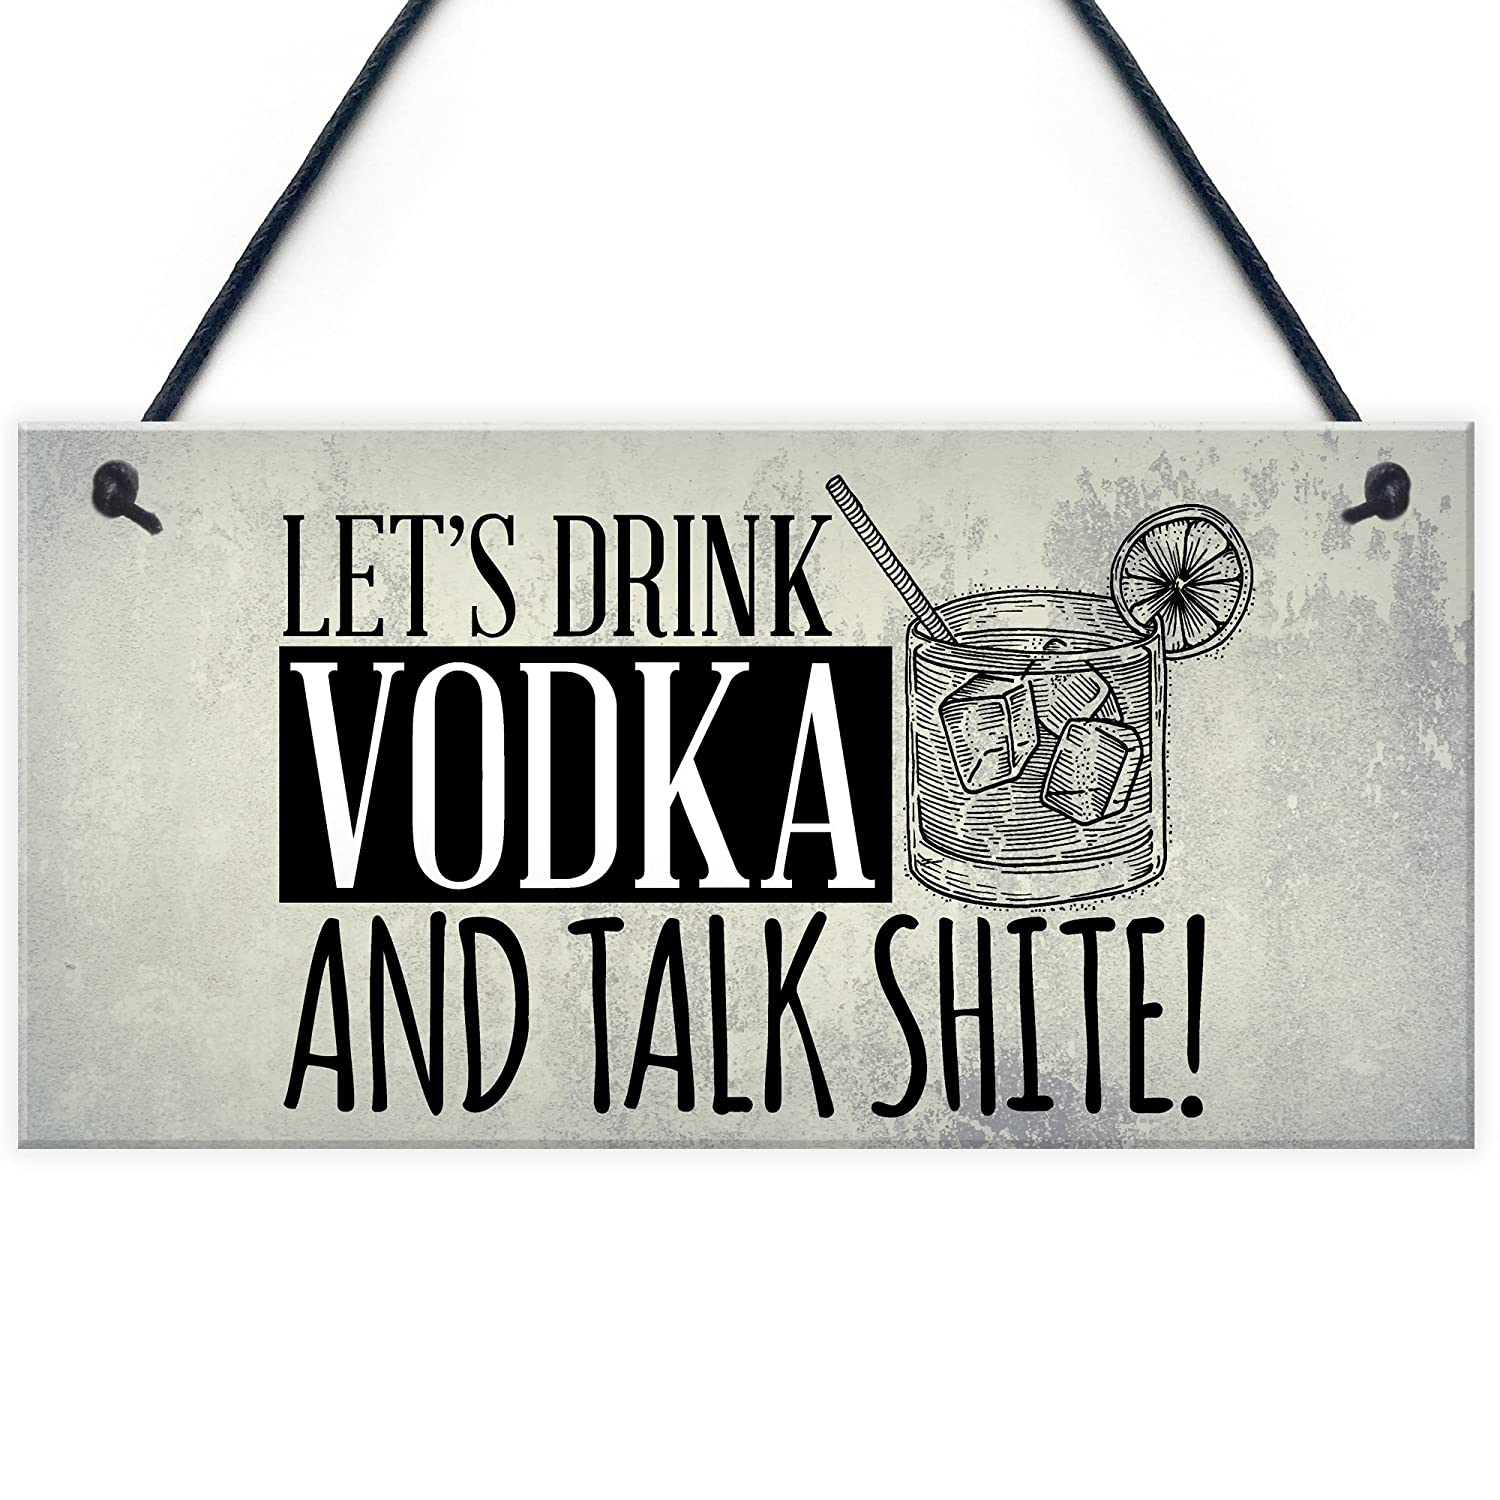 RED OCEAN Lets Drink Vodka Funny Alcohol Gift Man Cave Home Bar Hanging Wall Door Plaque Pub Sign